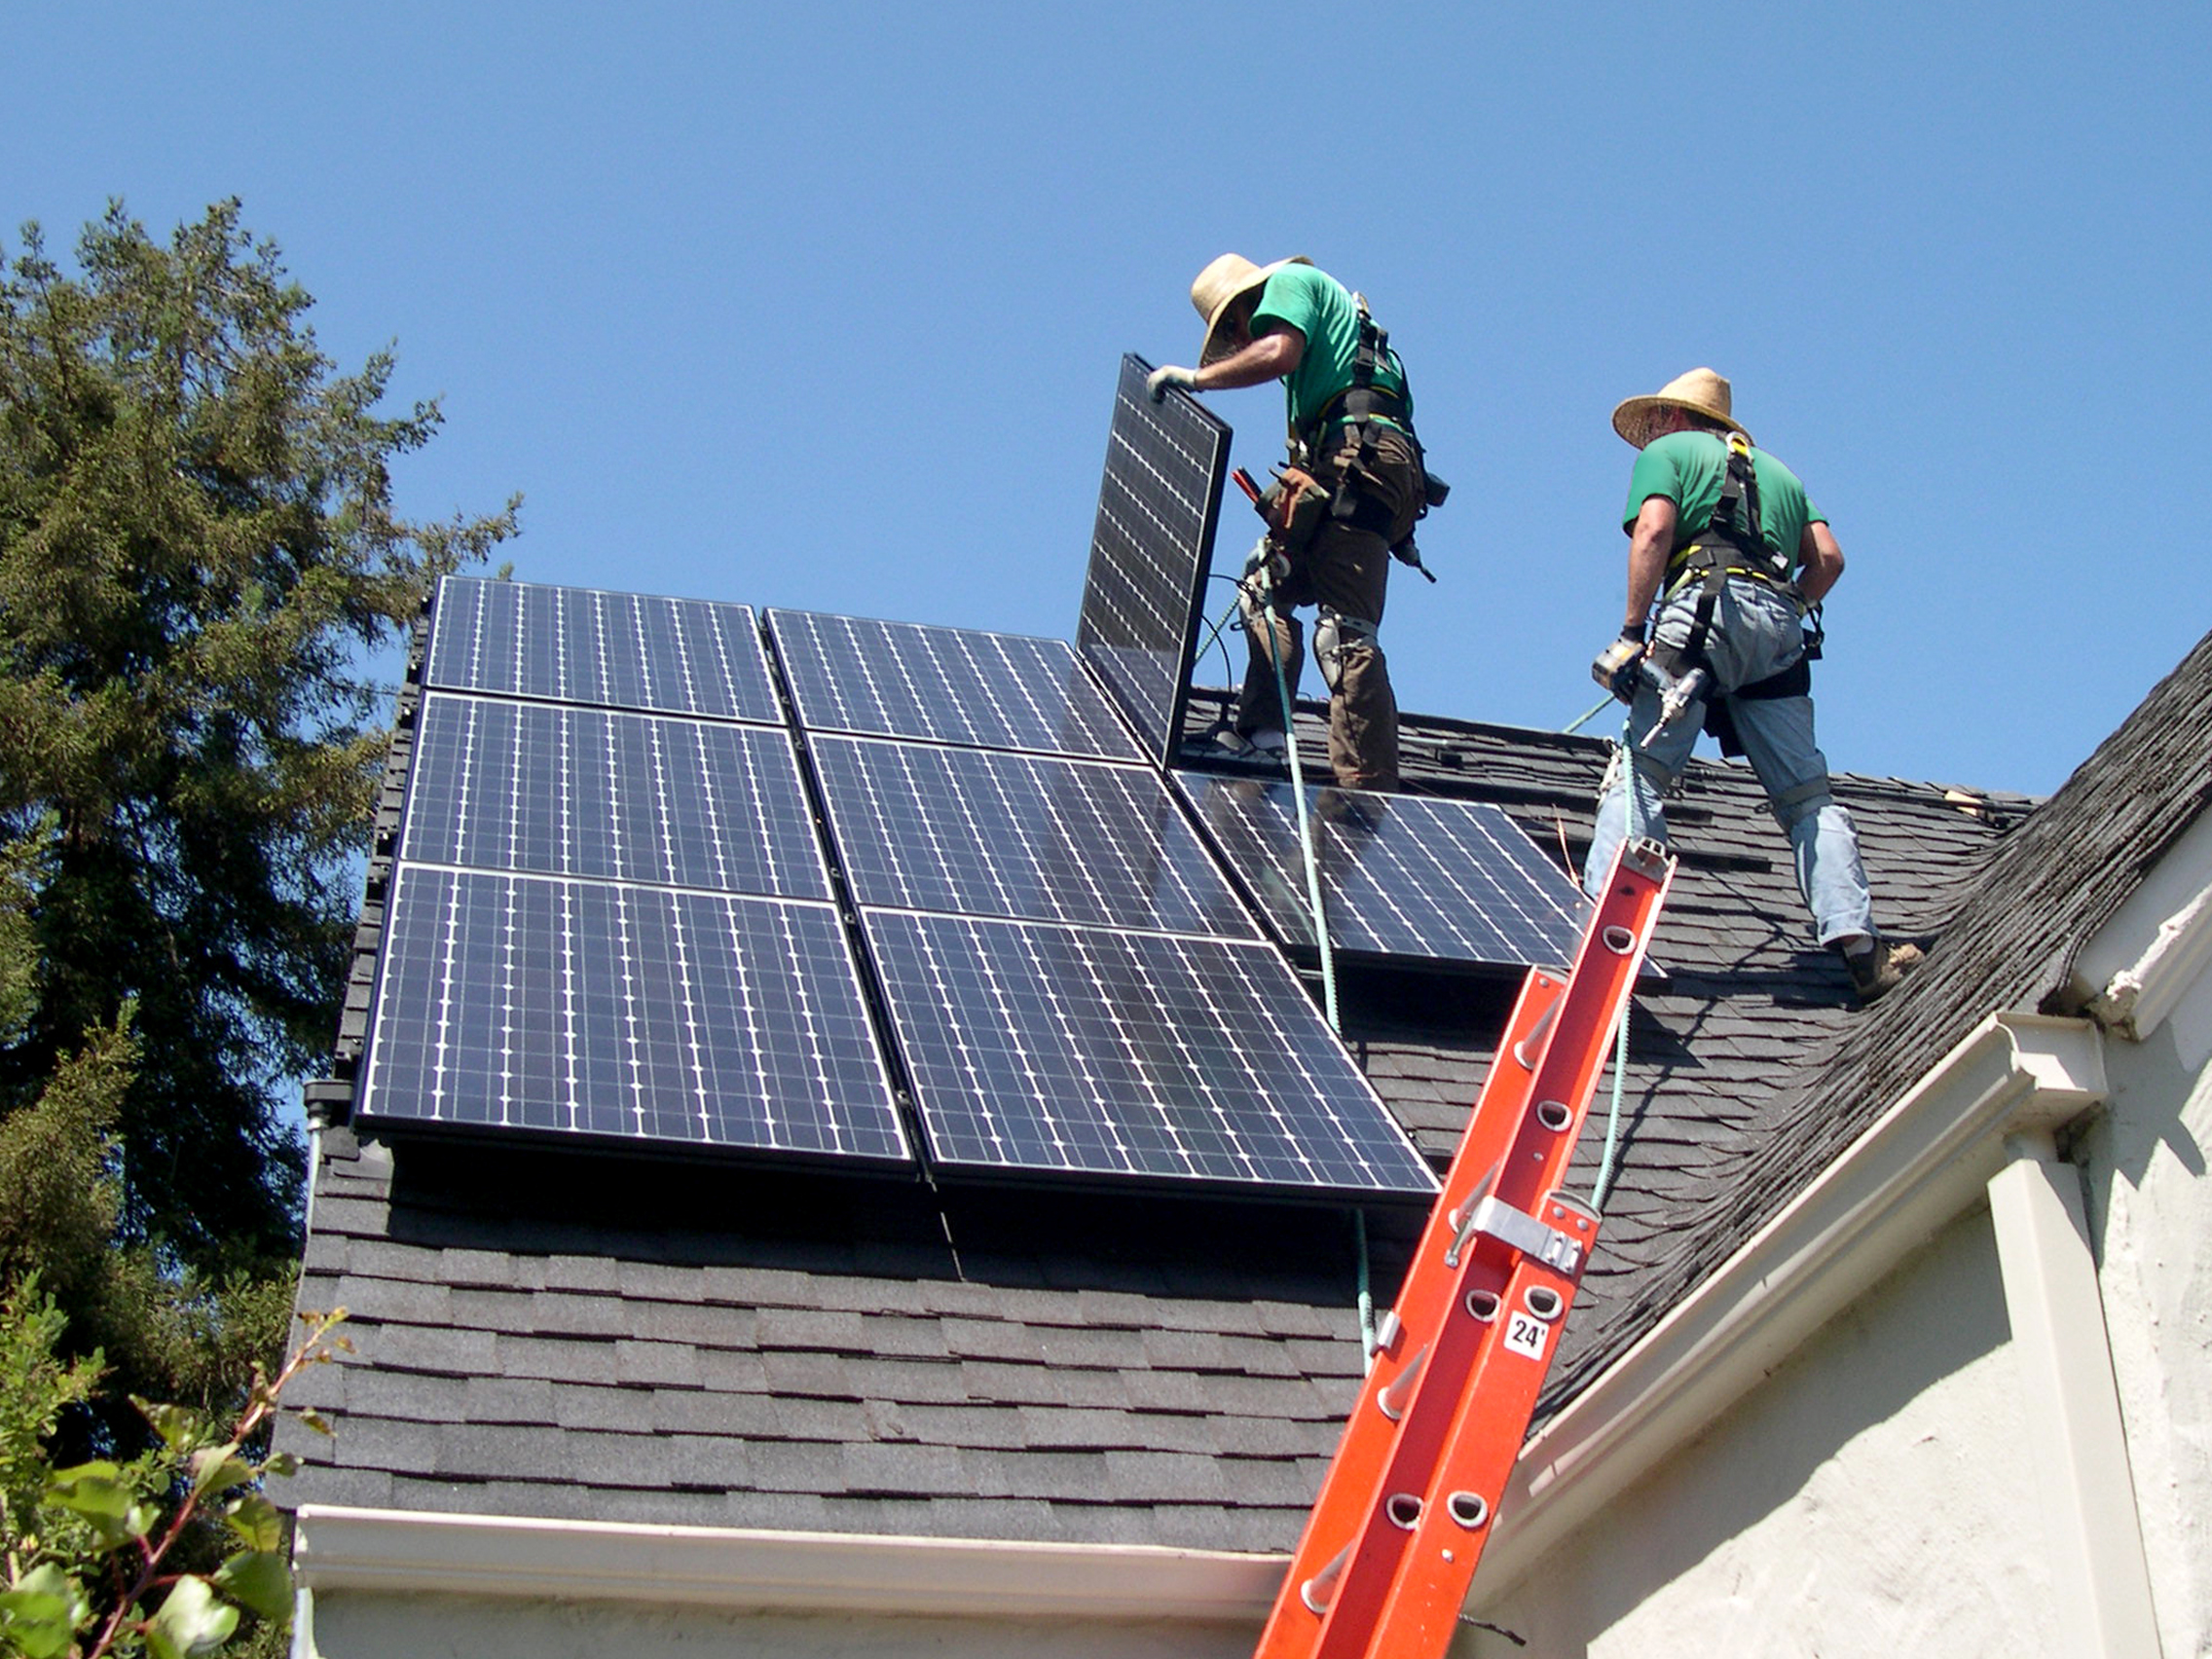 SolarCity buys East Coast's biggest home solar installer